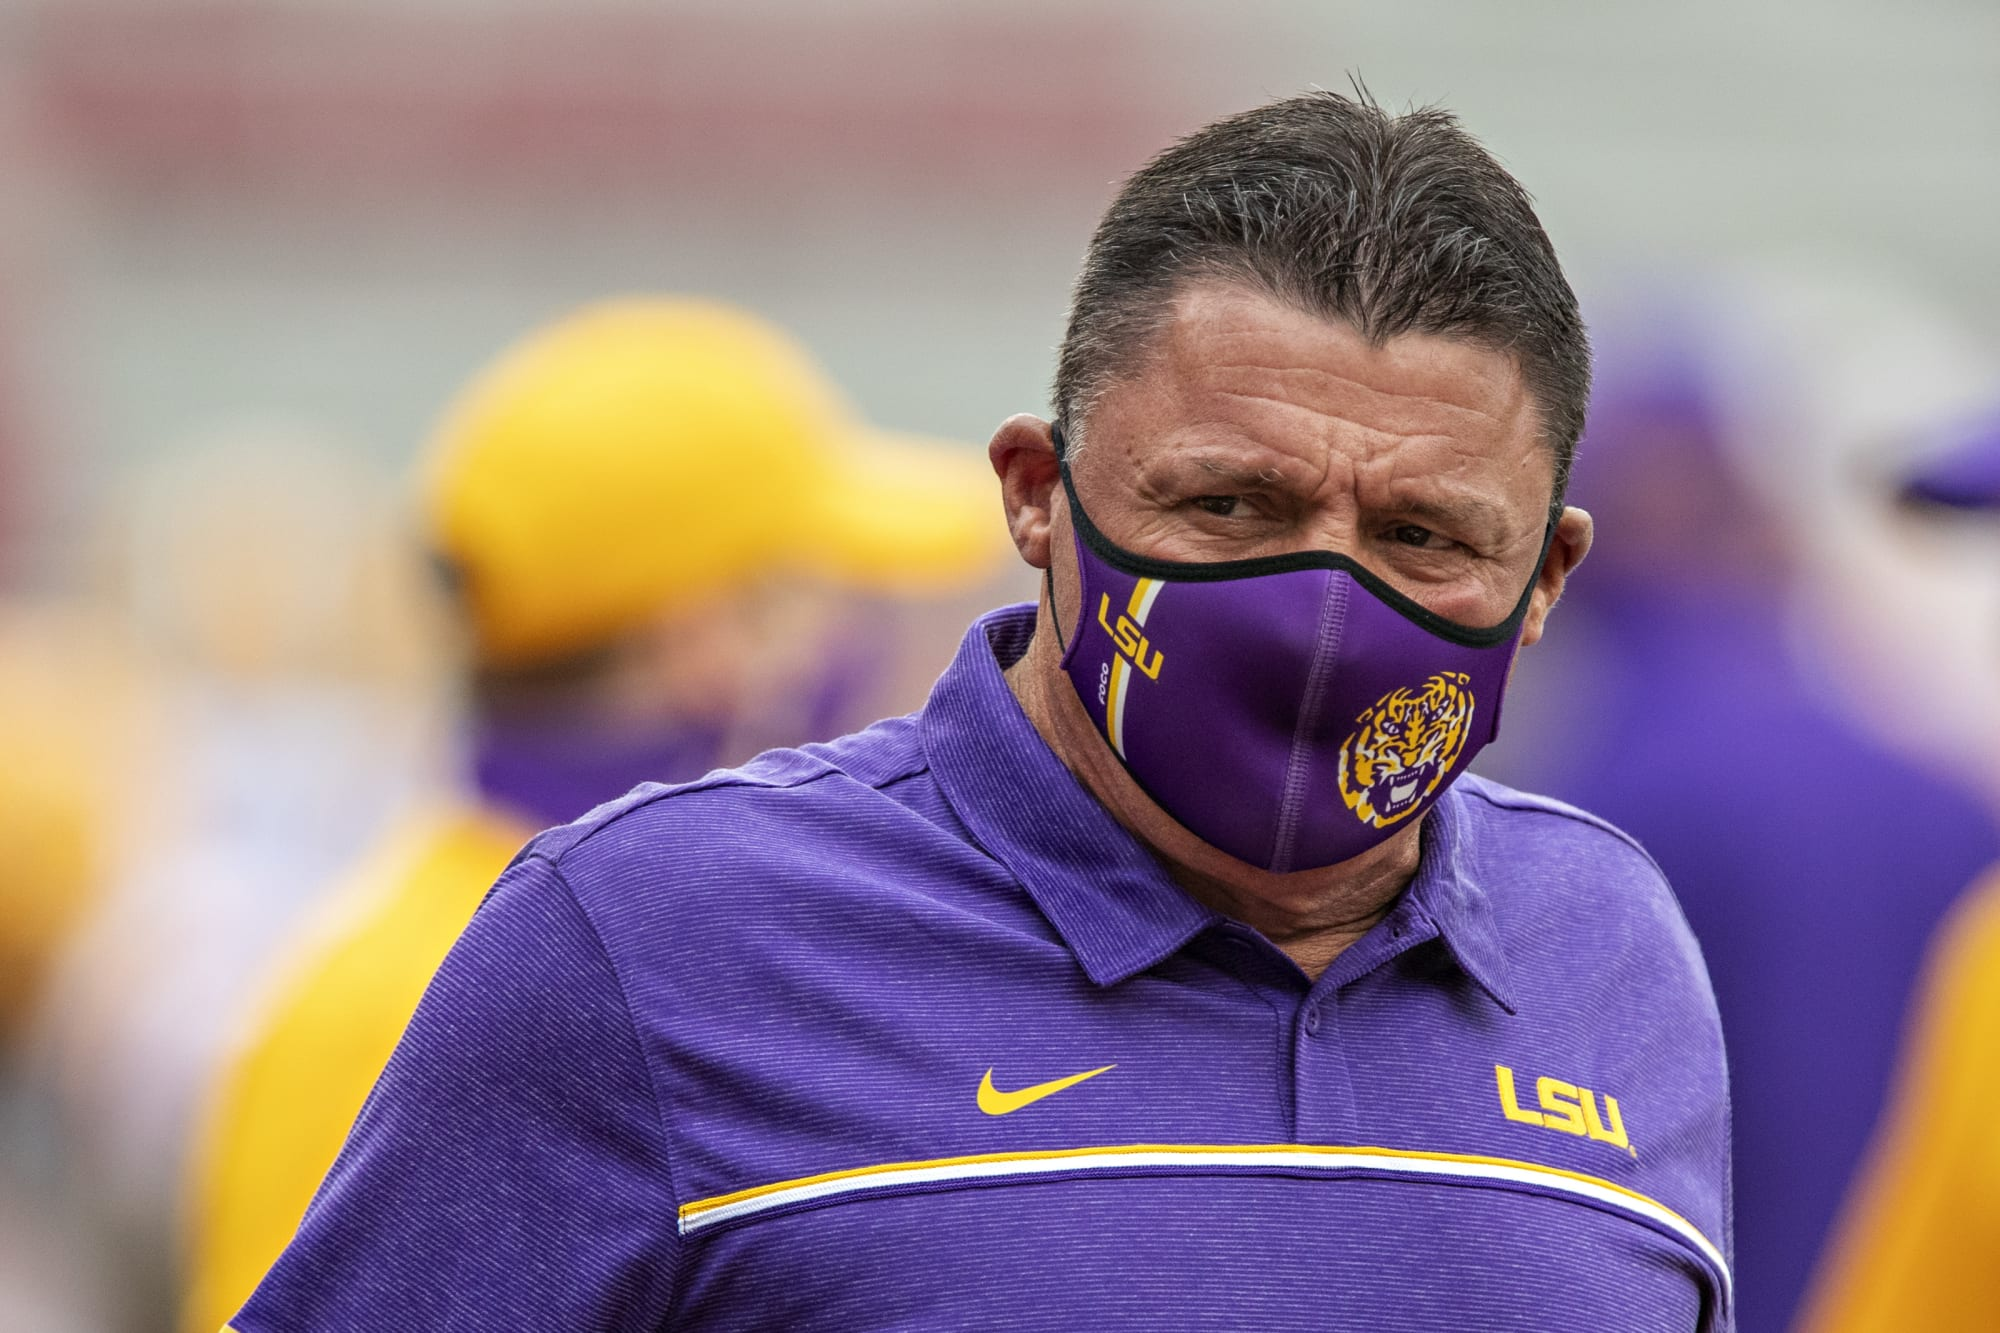 LSU Football: Ed Orgeron threw some serious shade after loss to Texas A&M